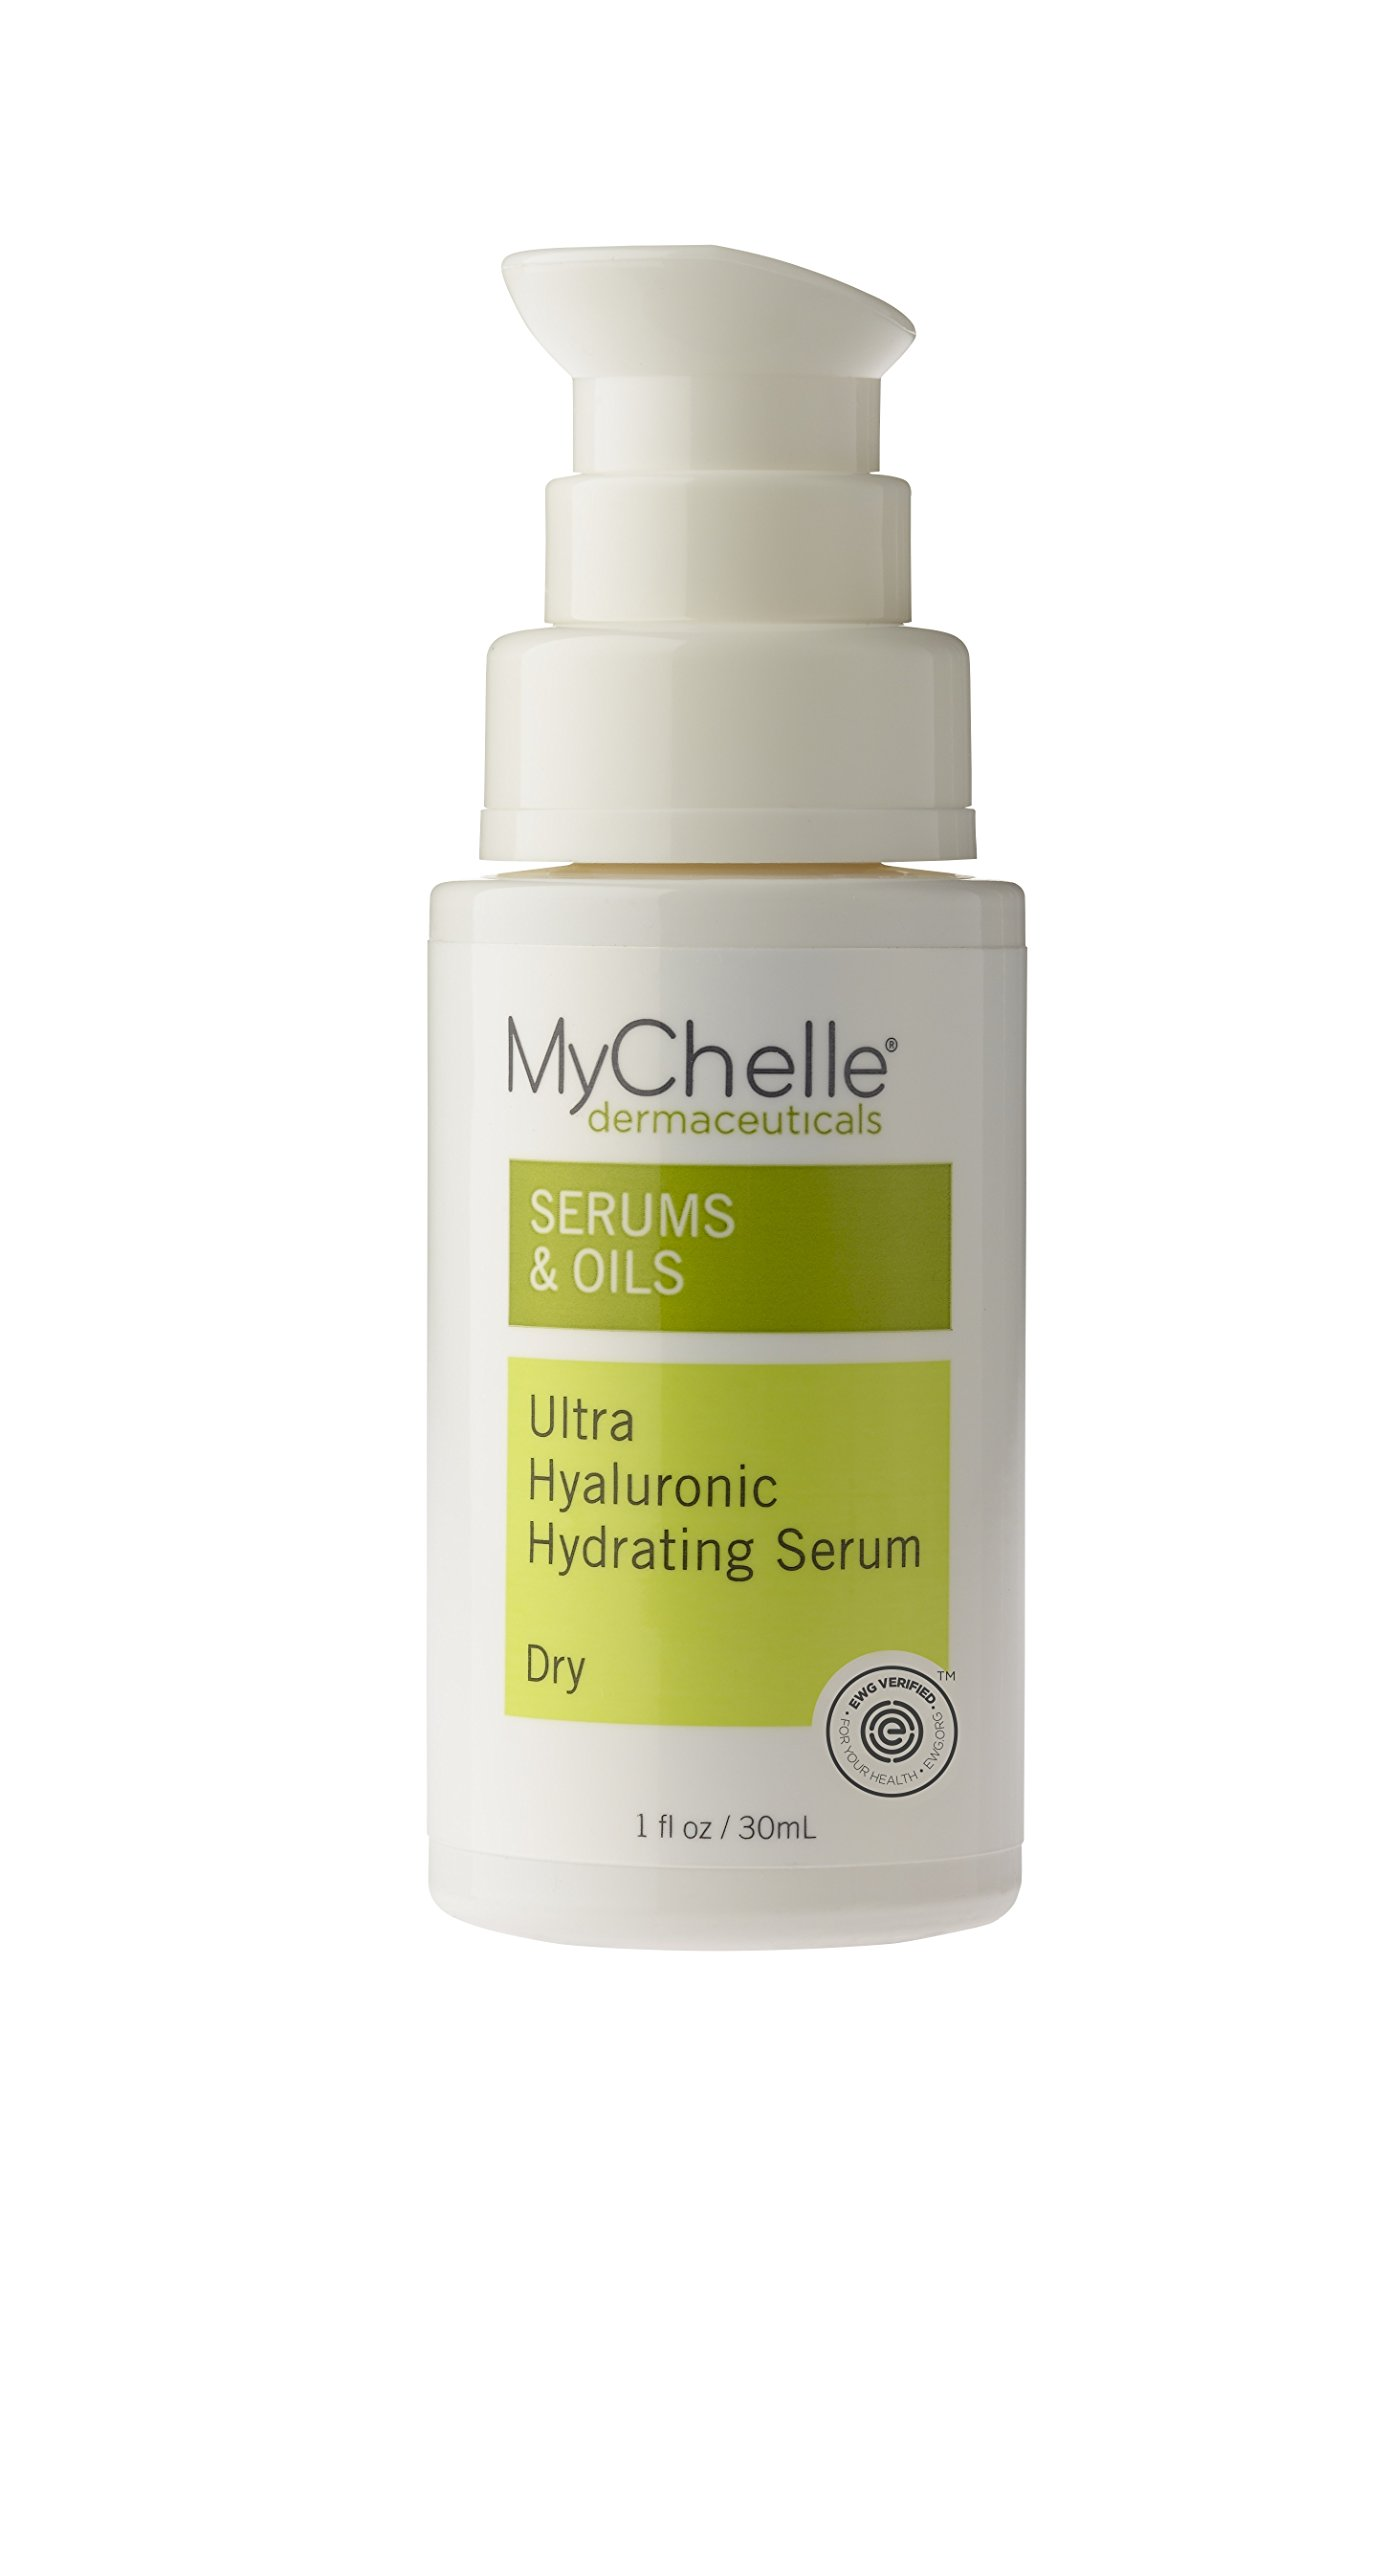 MyChelle Ultra Hyaluronic Hydrating Serum, Hyaluronic Acid Serum for Dry and Normal Skin Types, 1 fl oz